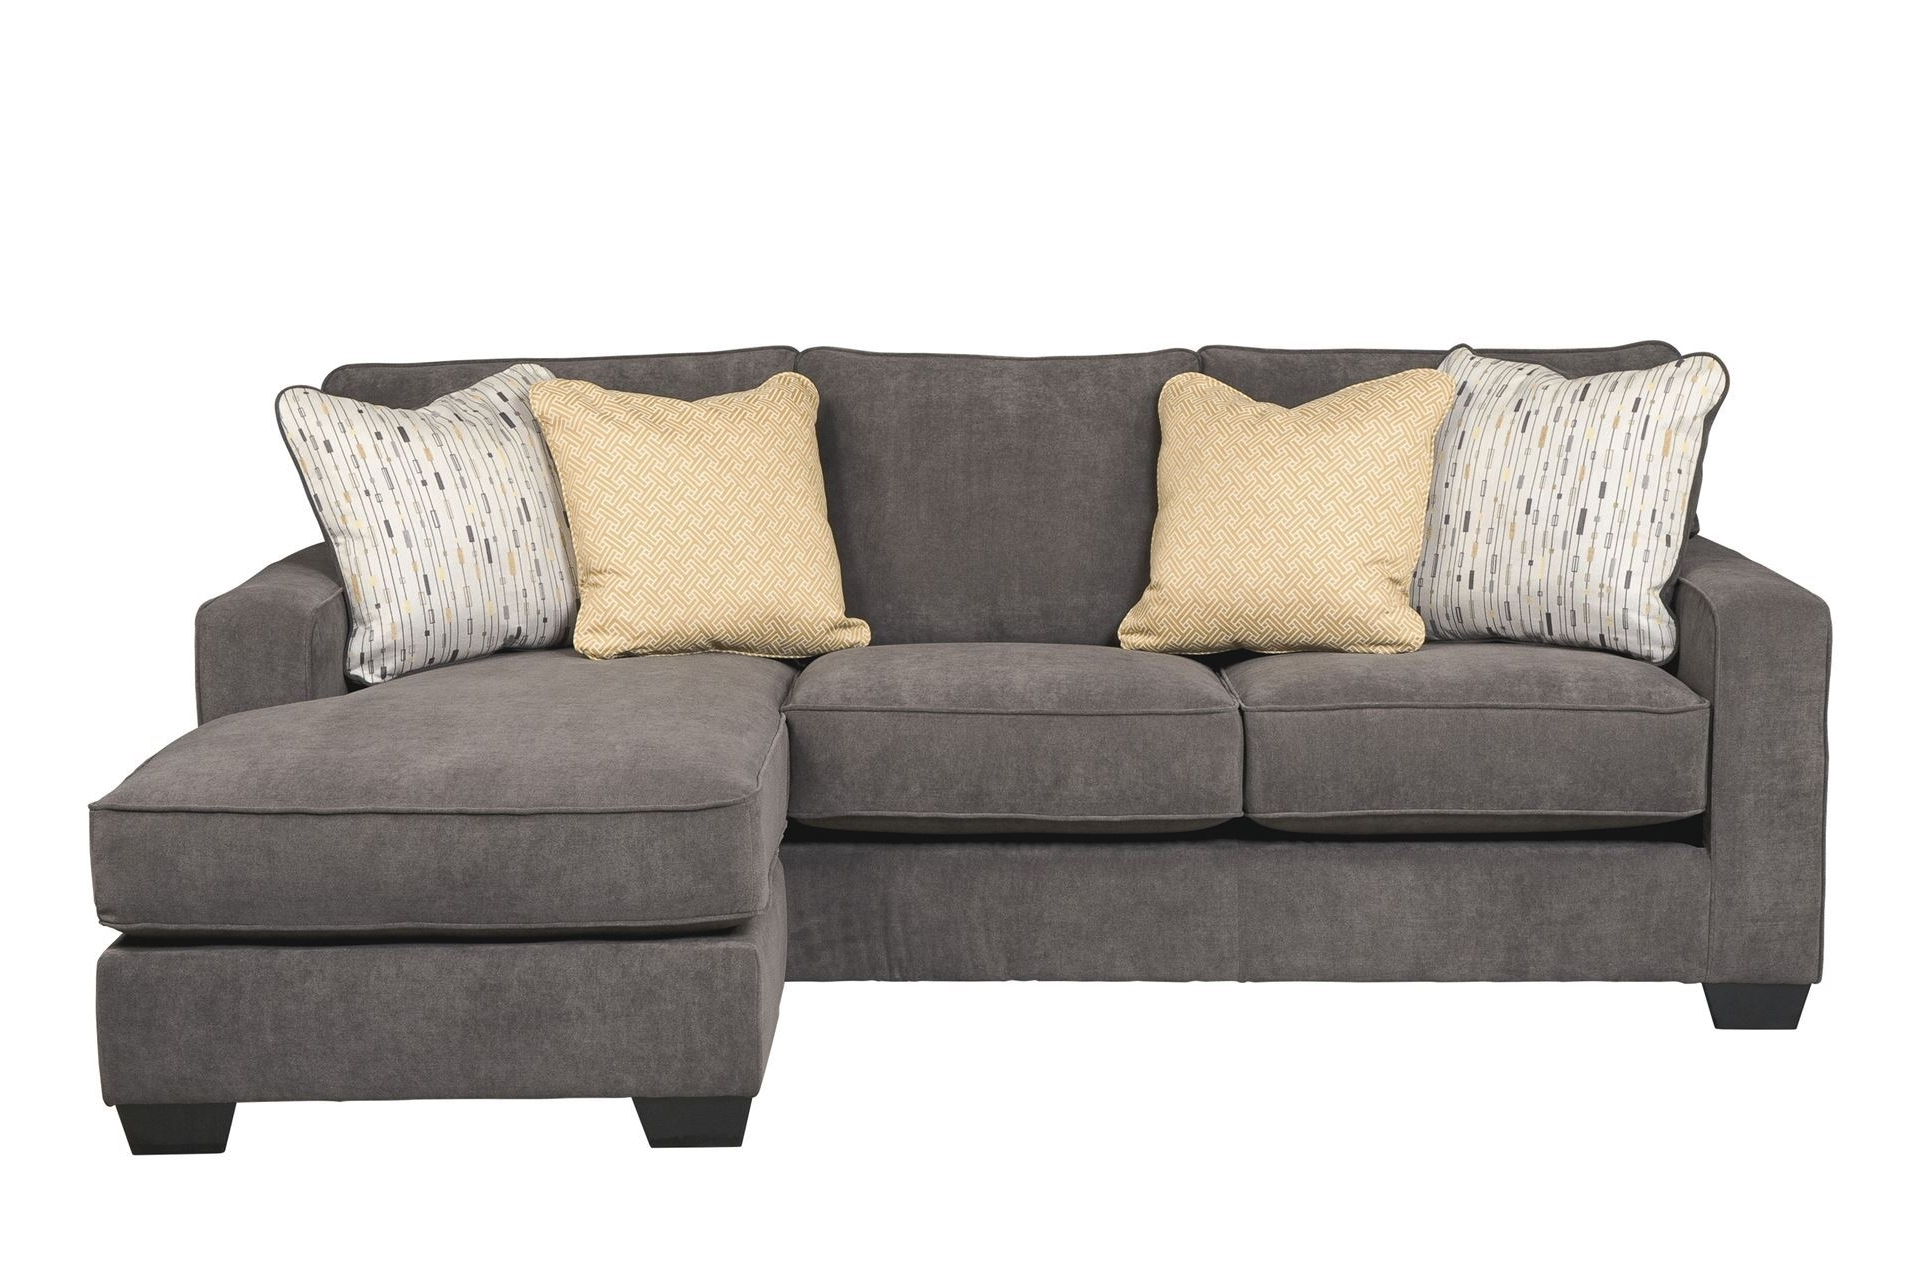 Living Spaces, Living Rooms And Apartments Regarding Preferred Living Spaces Sectional Sofas (View 12 of 20)